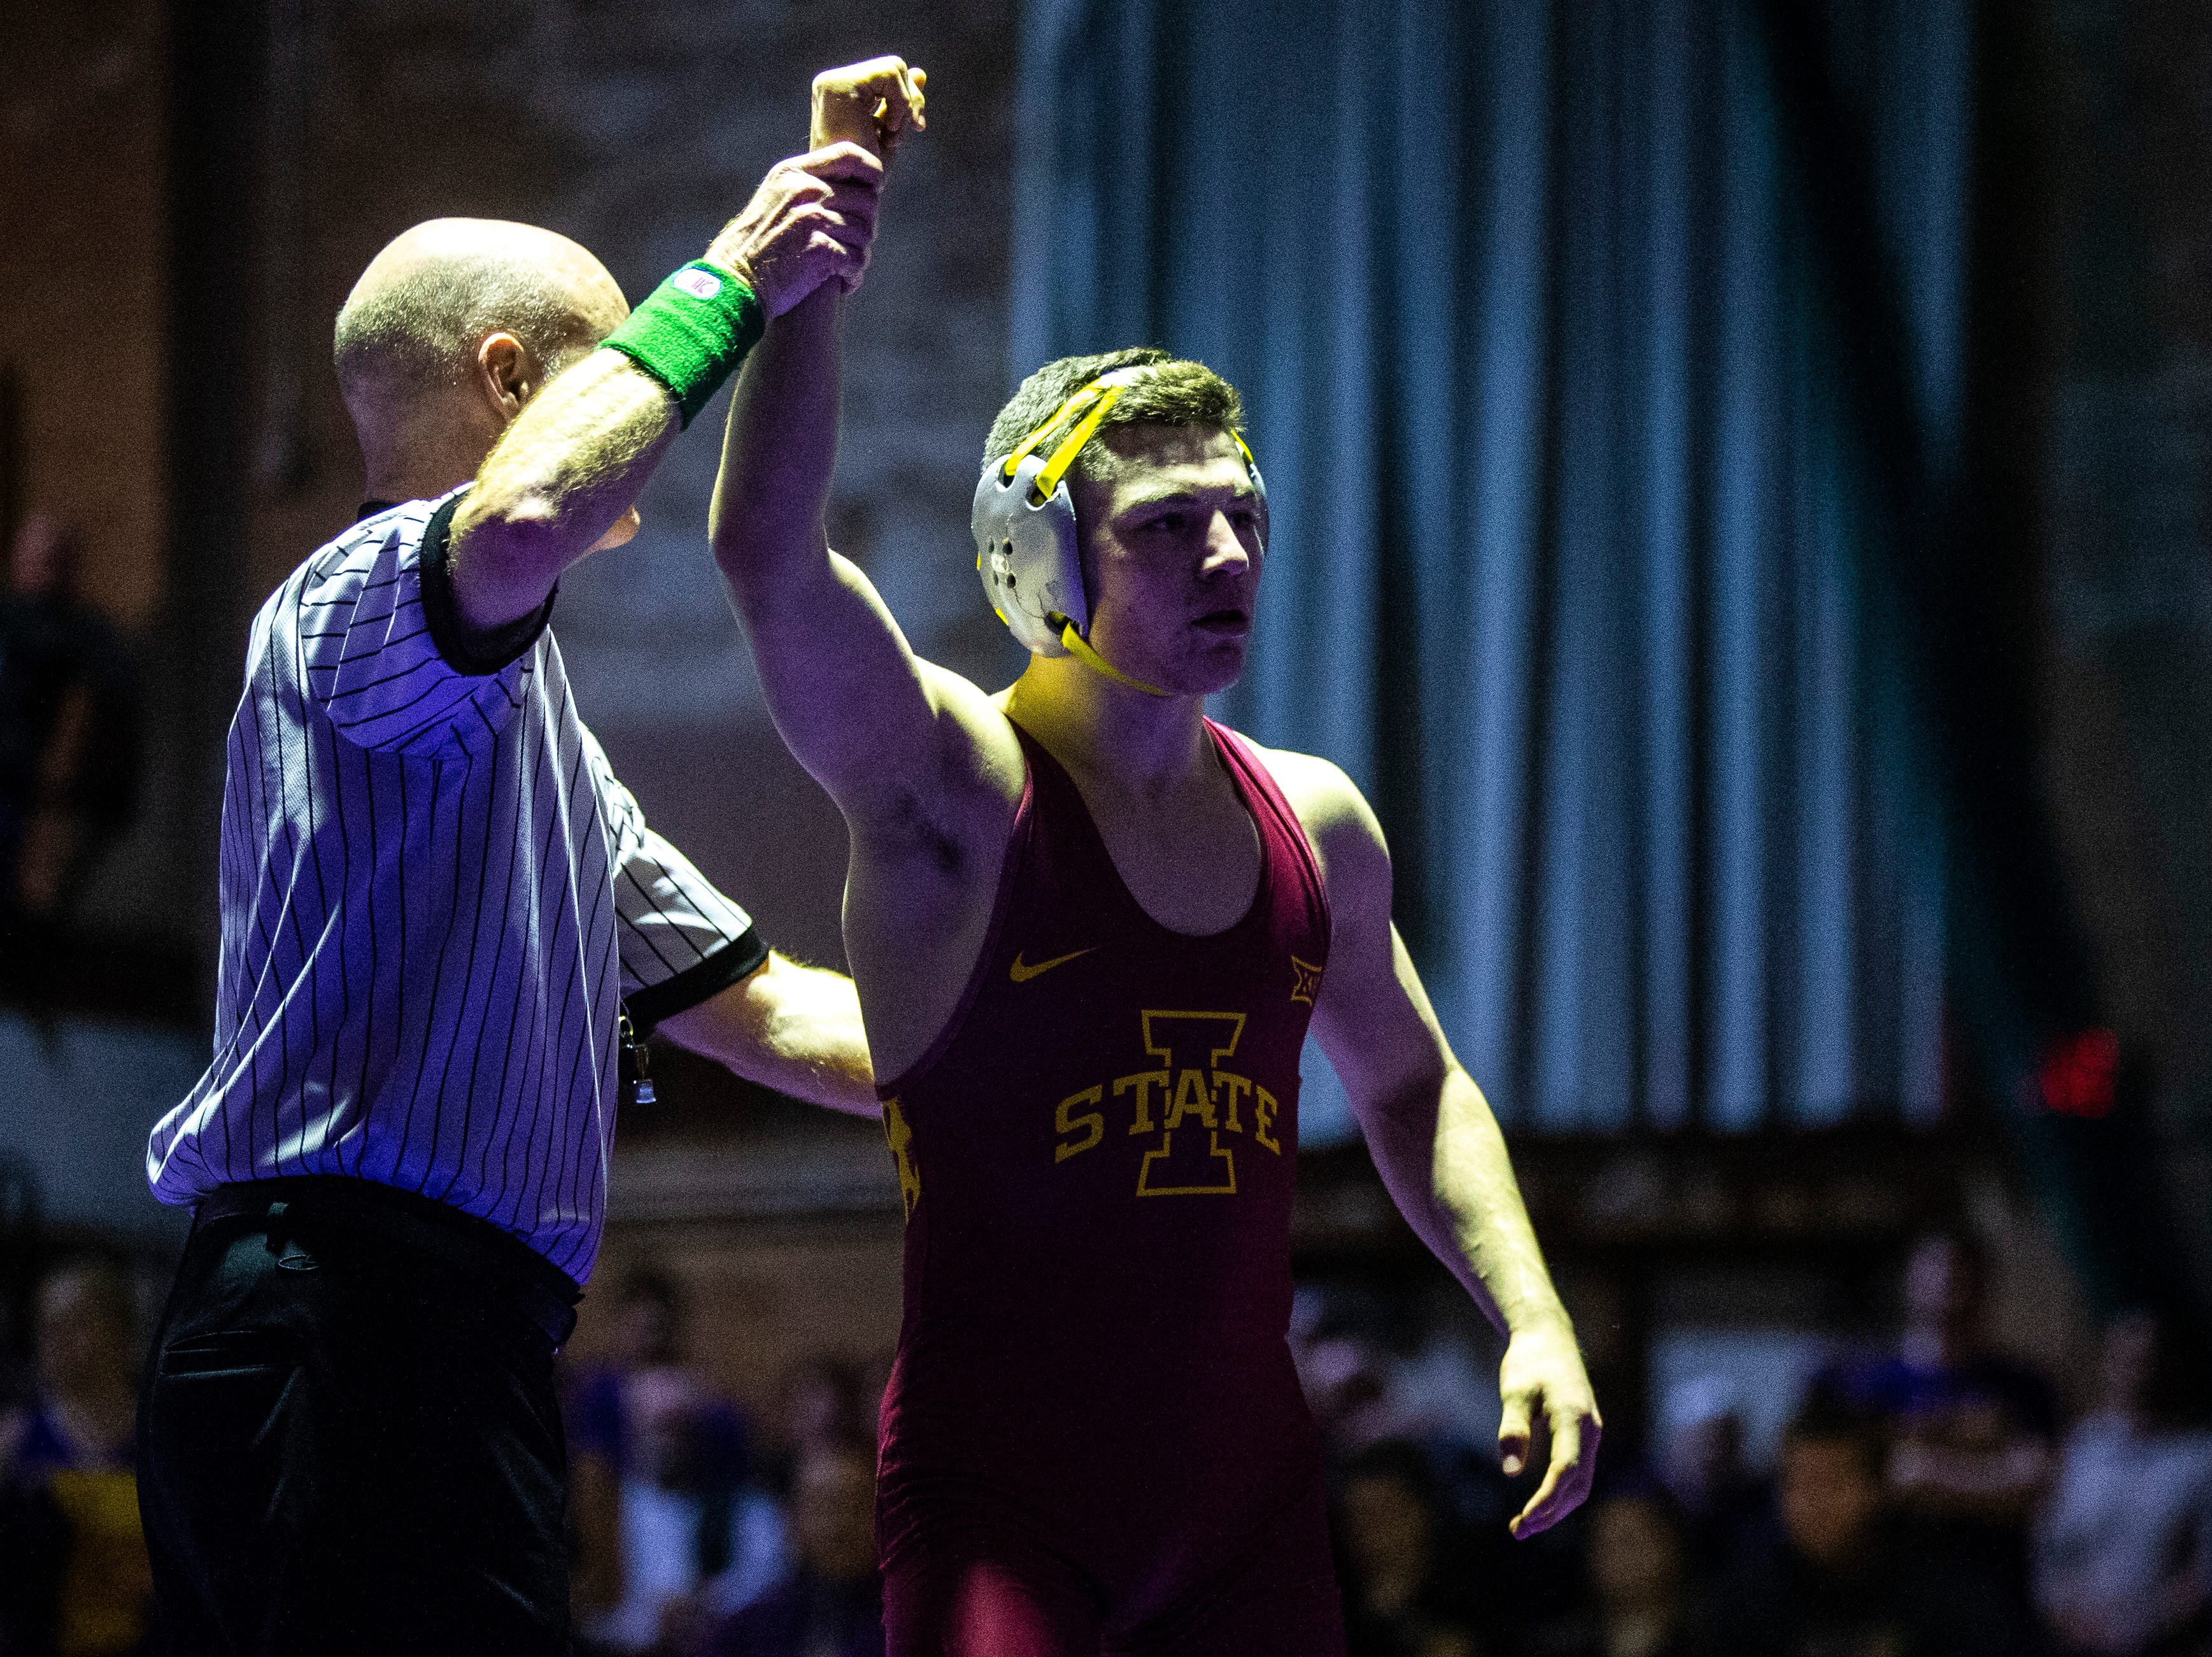 Iowa State's Austin Gomez has his hand raised after winning a match at 133 during a NCAA Big 12 wrestling dual on Thursday, Feb. 21, 2019 at the West Gymnasium in Cedar Falls, Iowa.